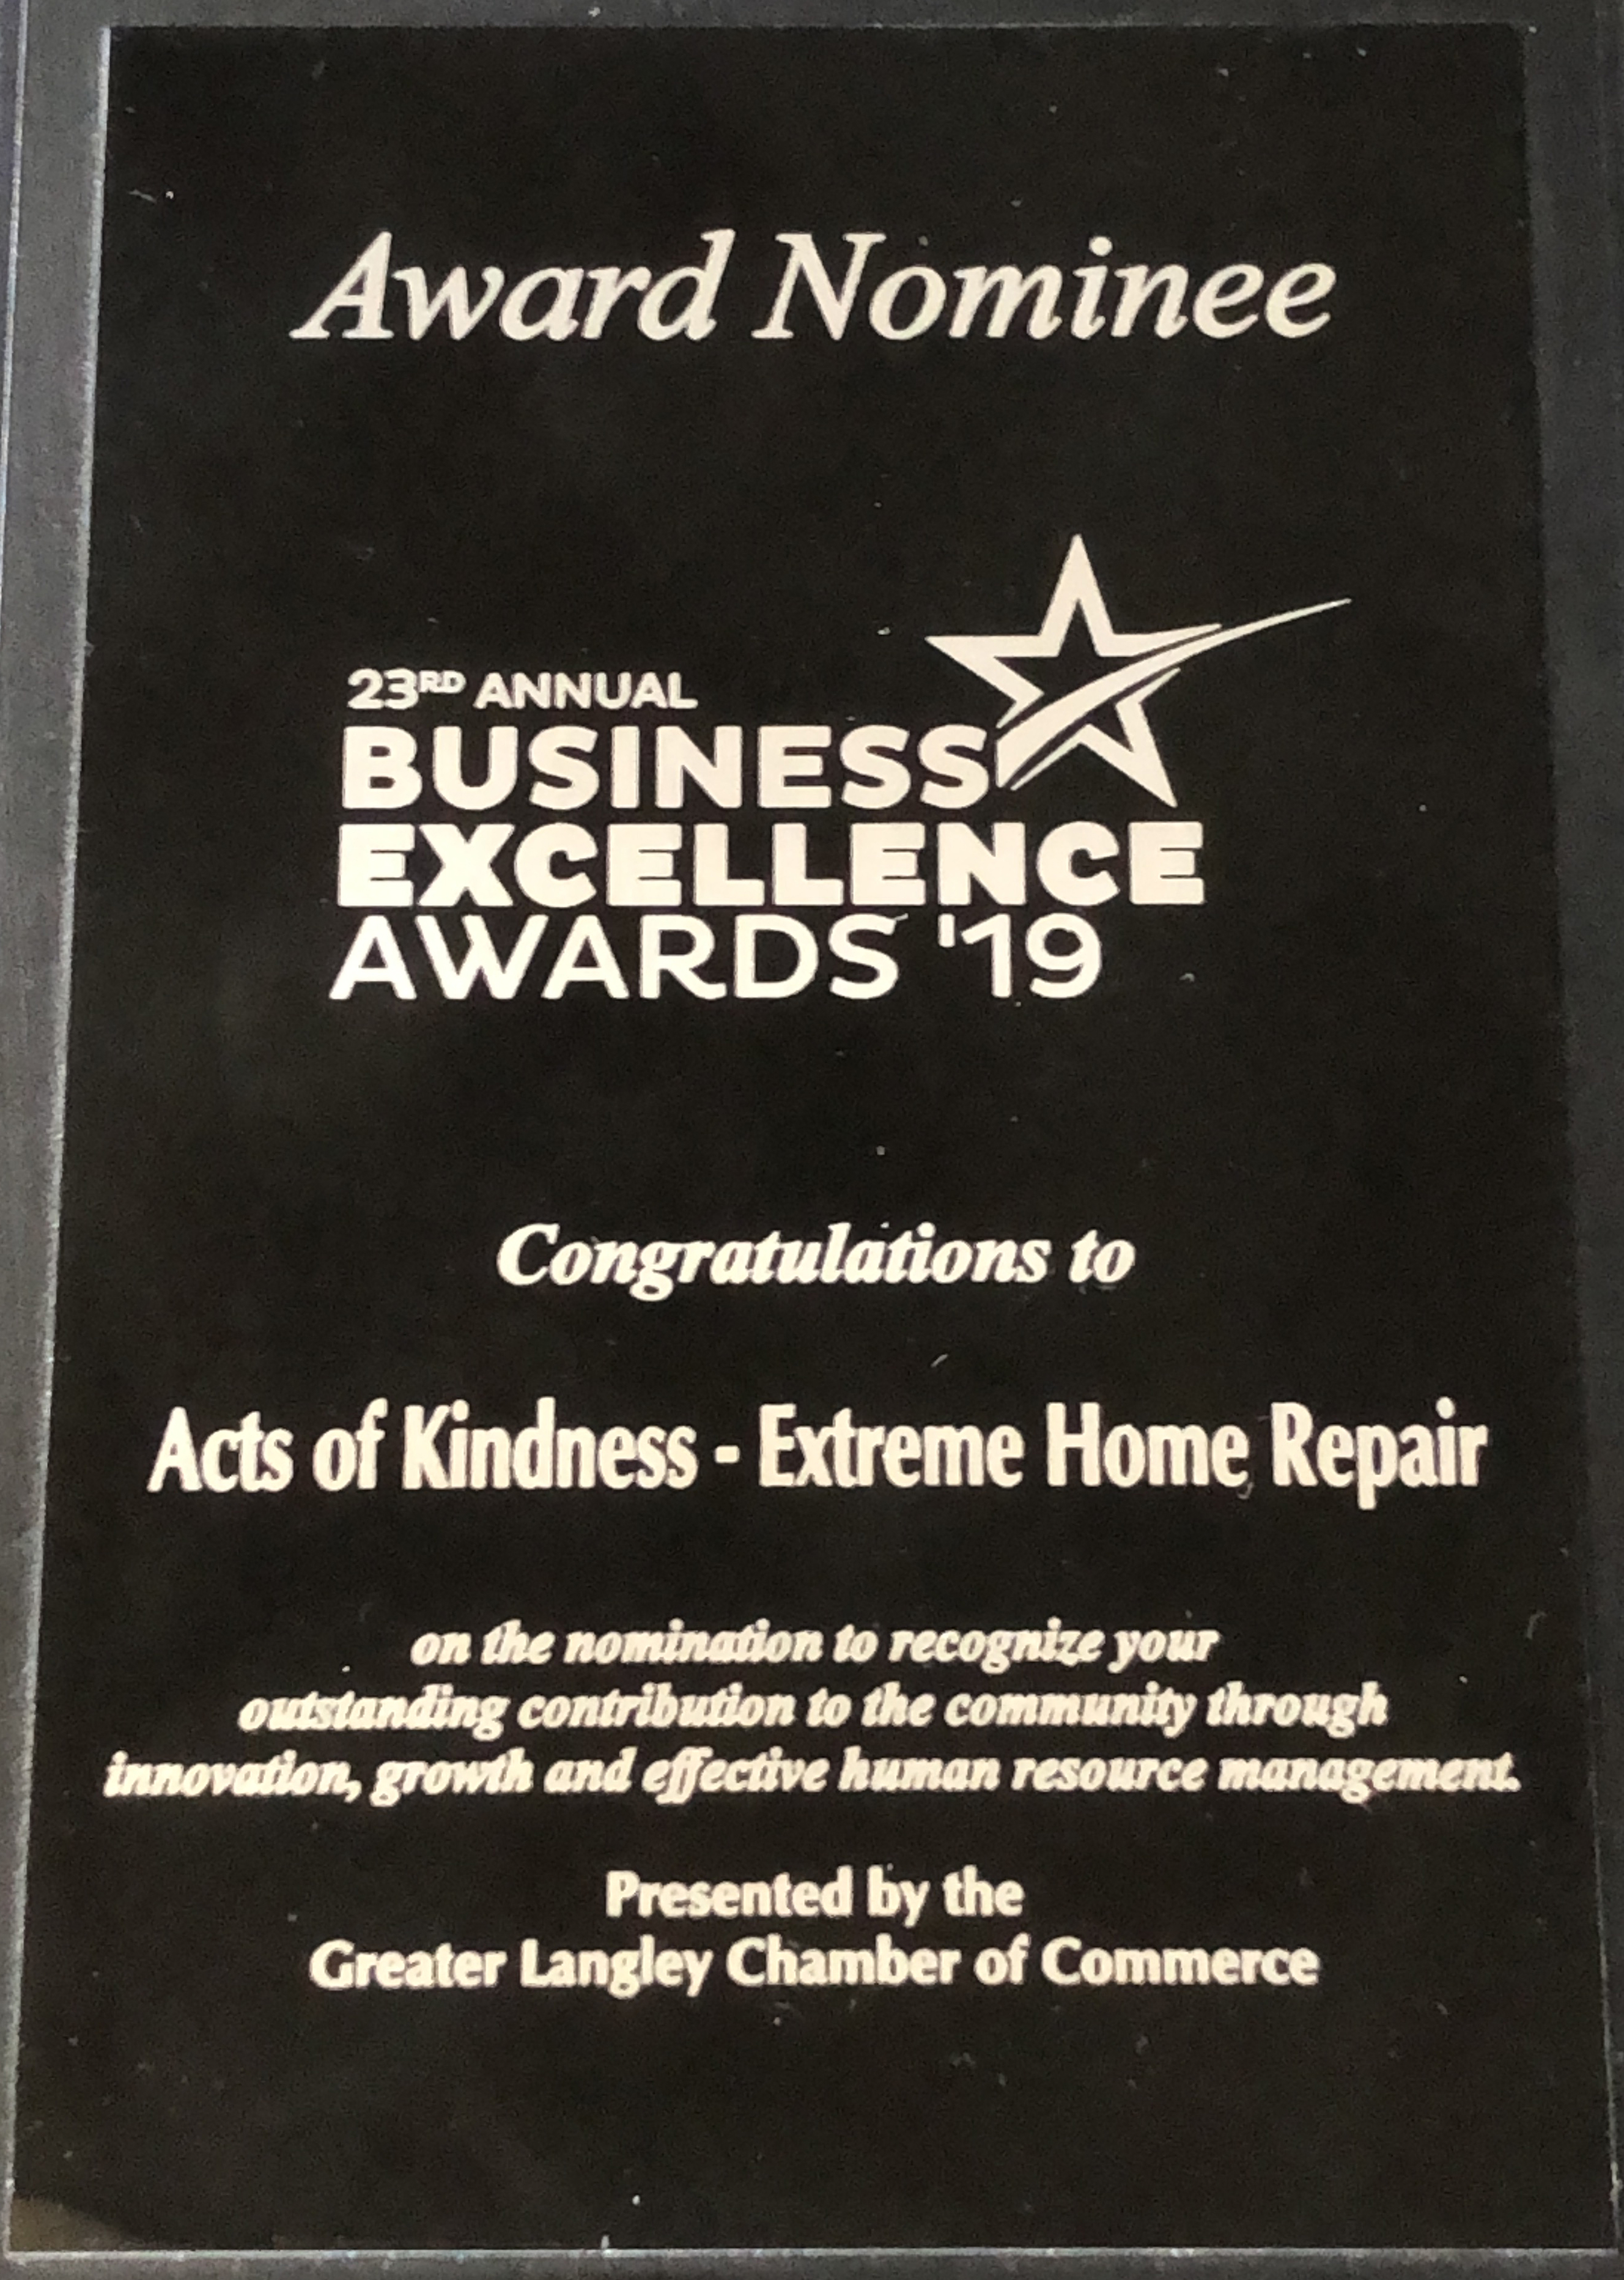 Award plaque presented to Acts of Kindness Extreme Home Repair